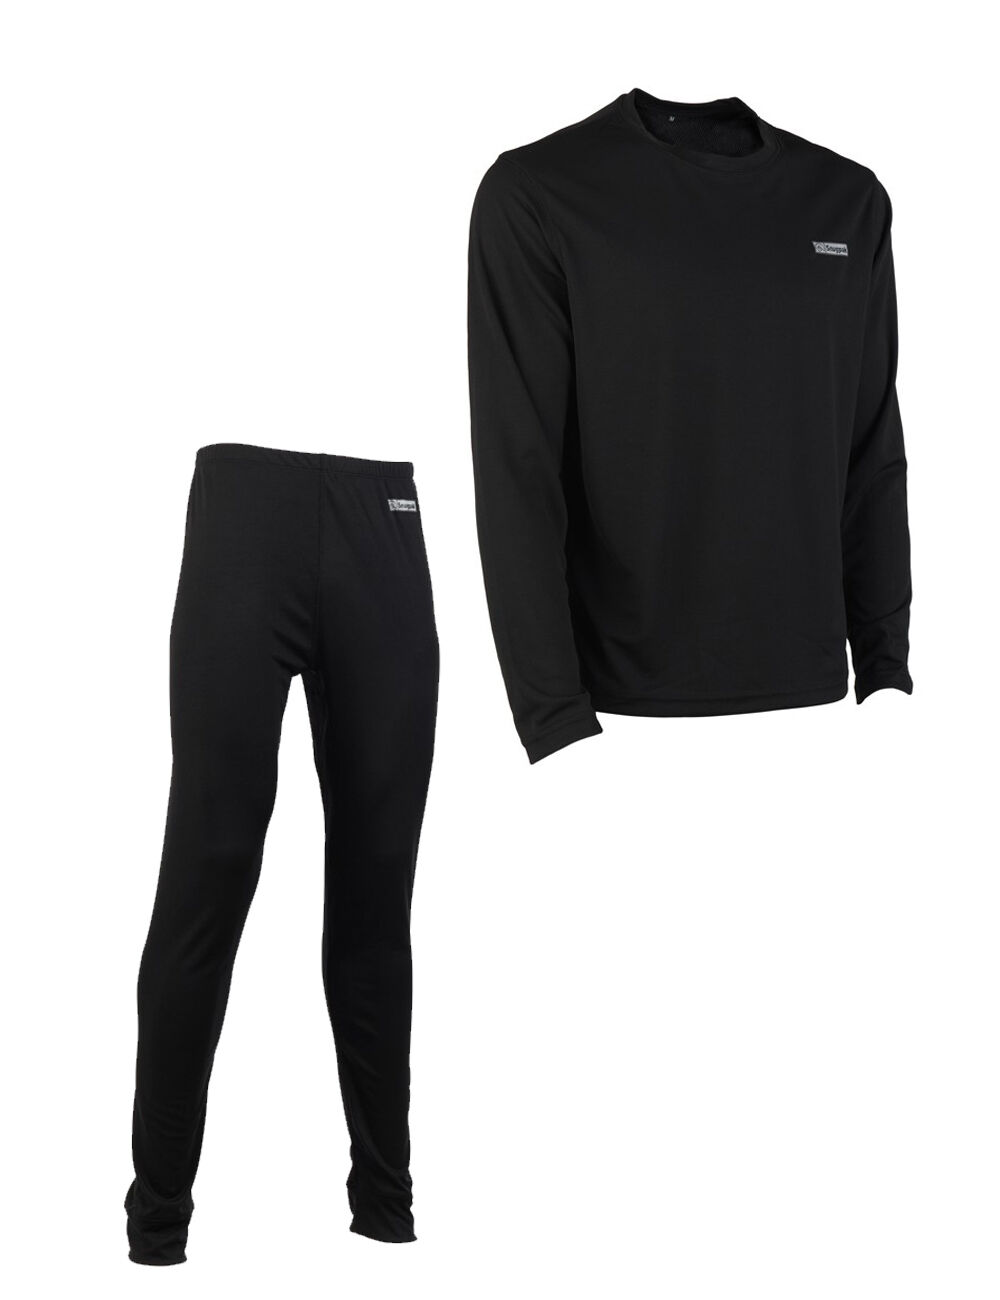 Sports Snugpaks 2nd Skinz Coolmax Thermals Ideal for Hiking Working Outdoors